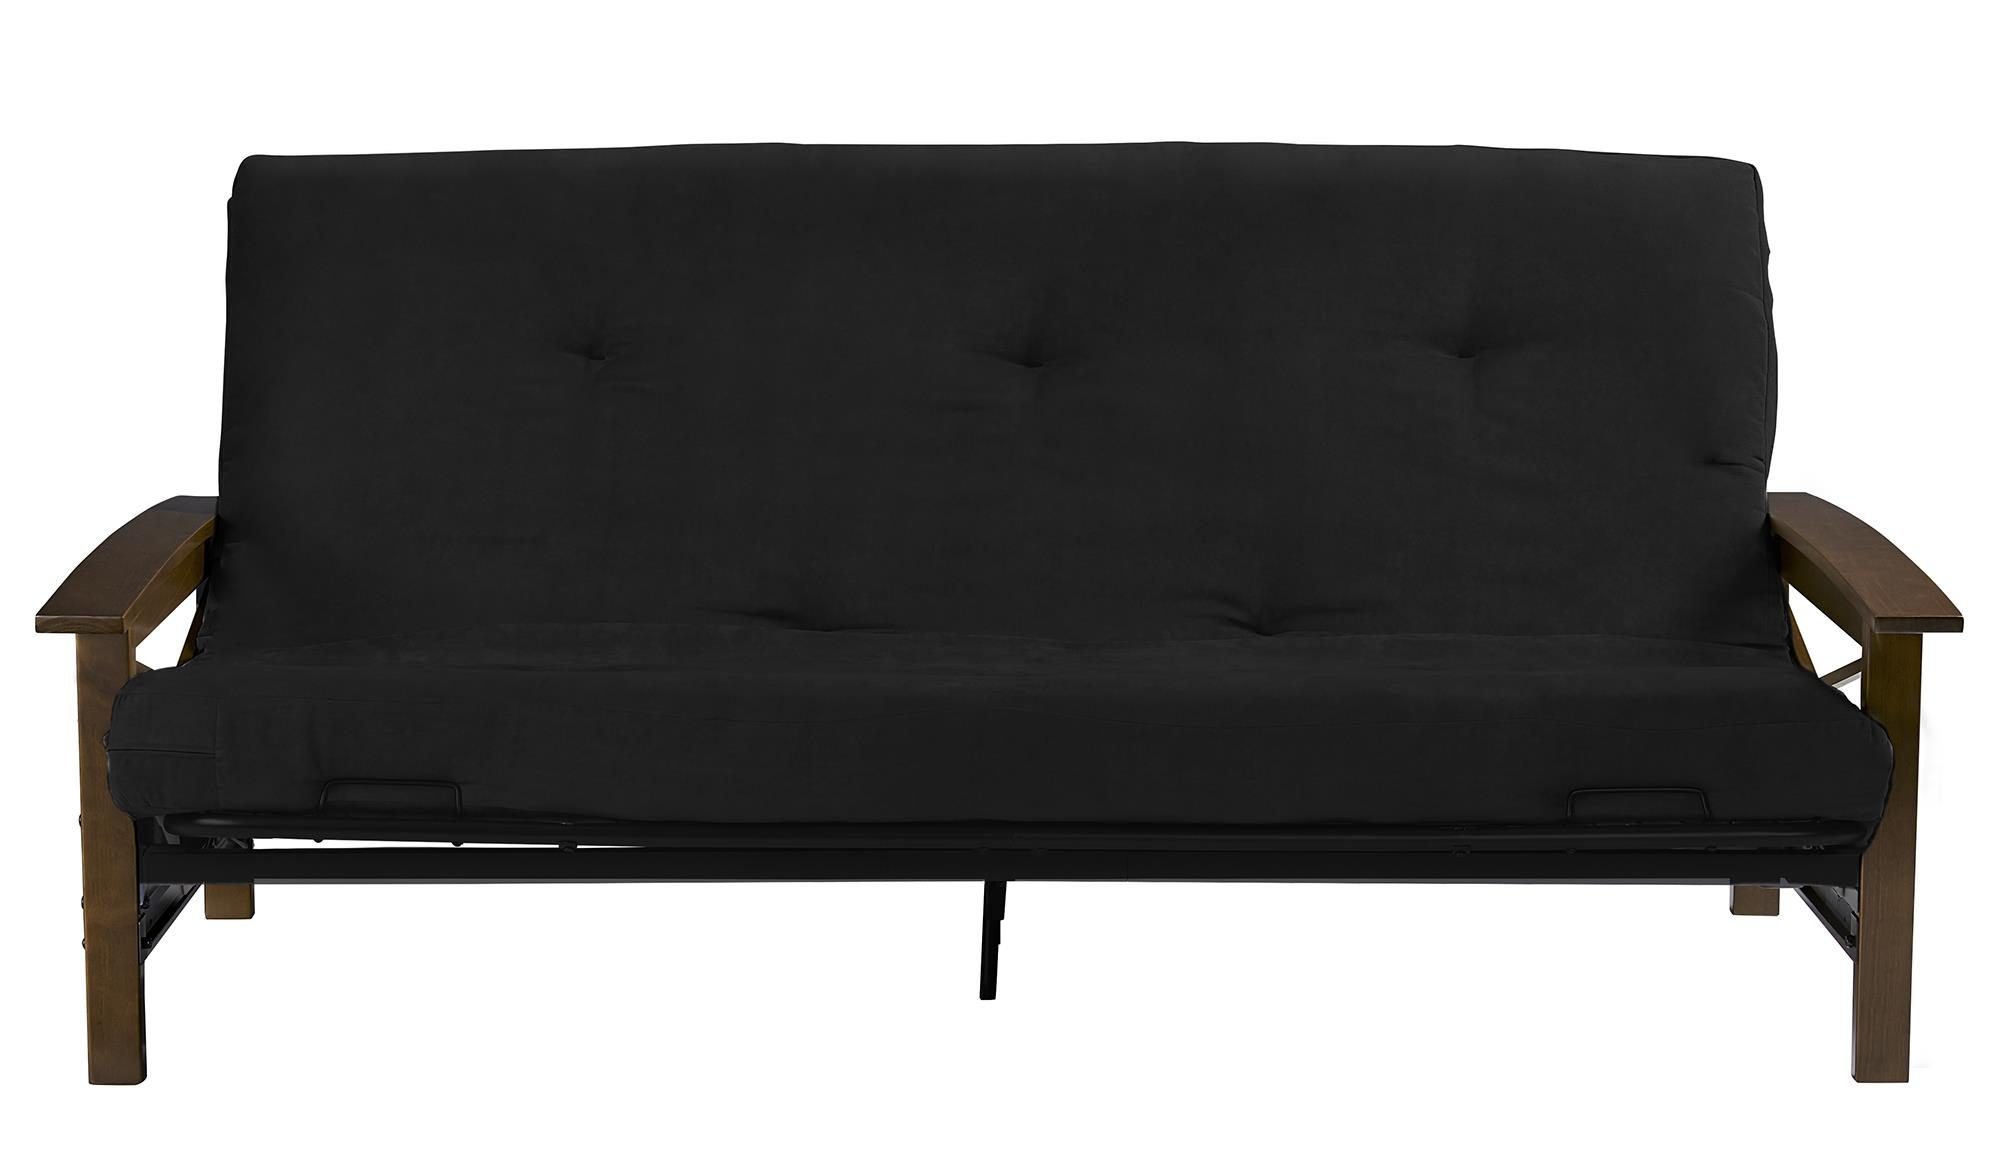 DHP Davis Full Size Wood Arm Futon, Multiple Colors by Dorel Home Products